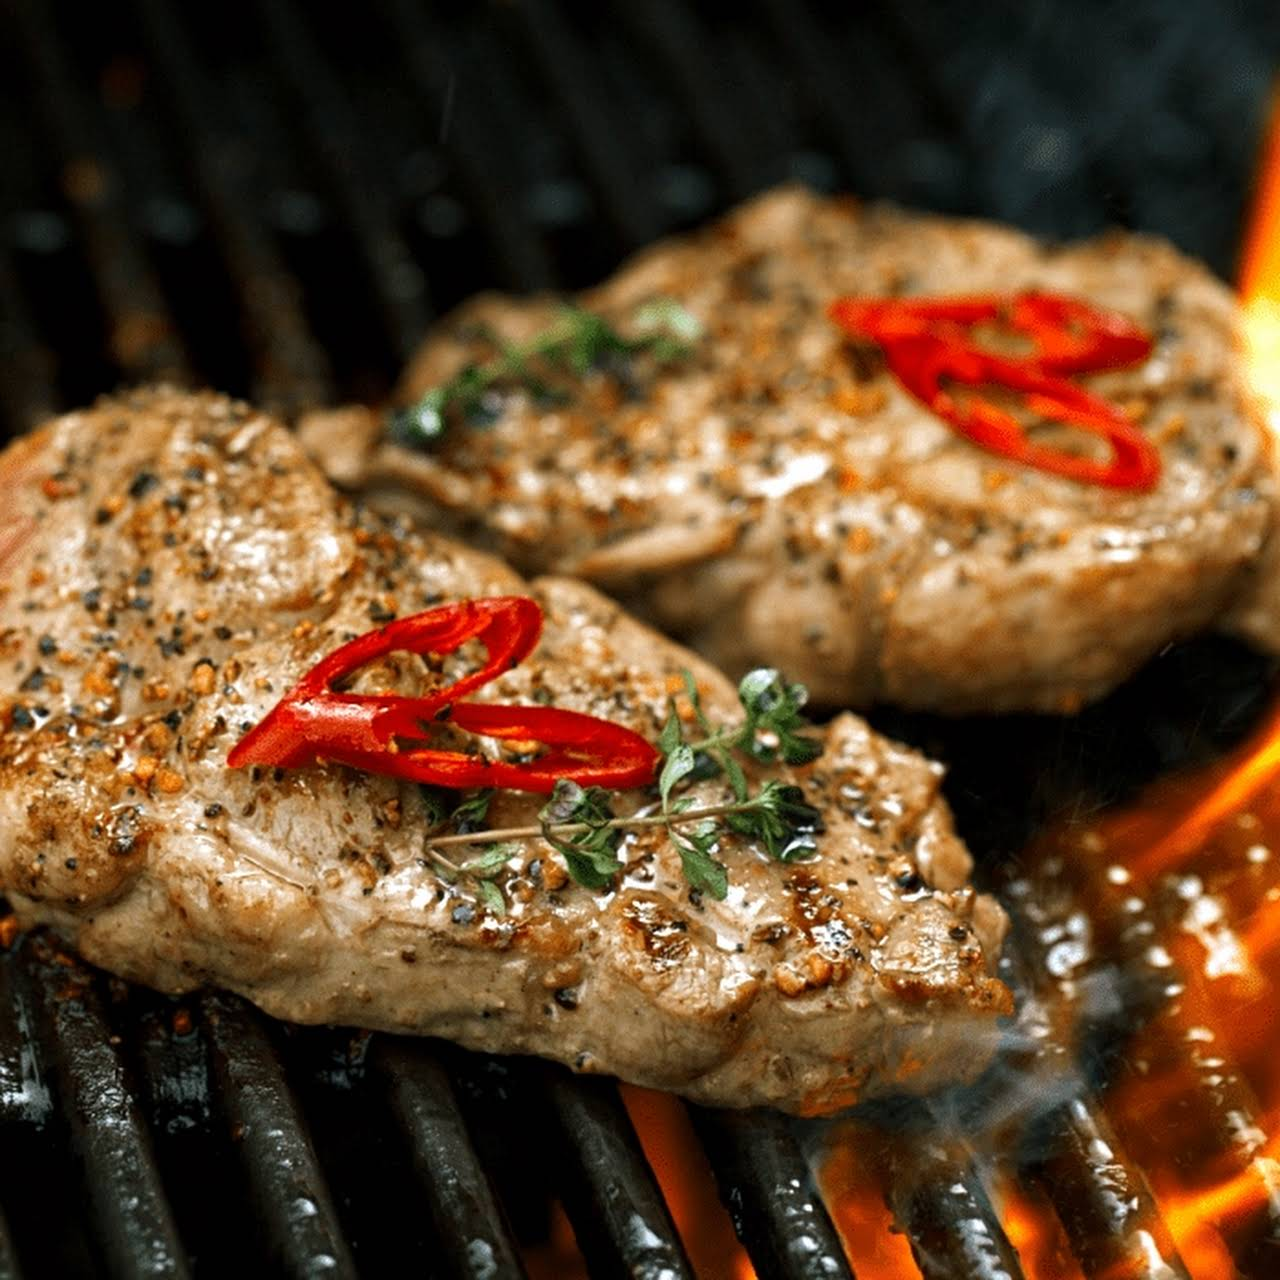 The World's Best All-Purpose Meat Marinade